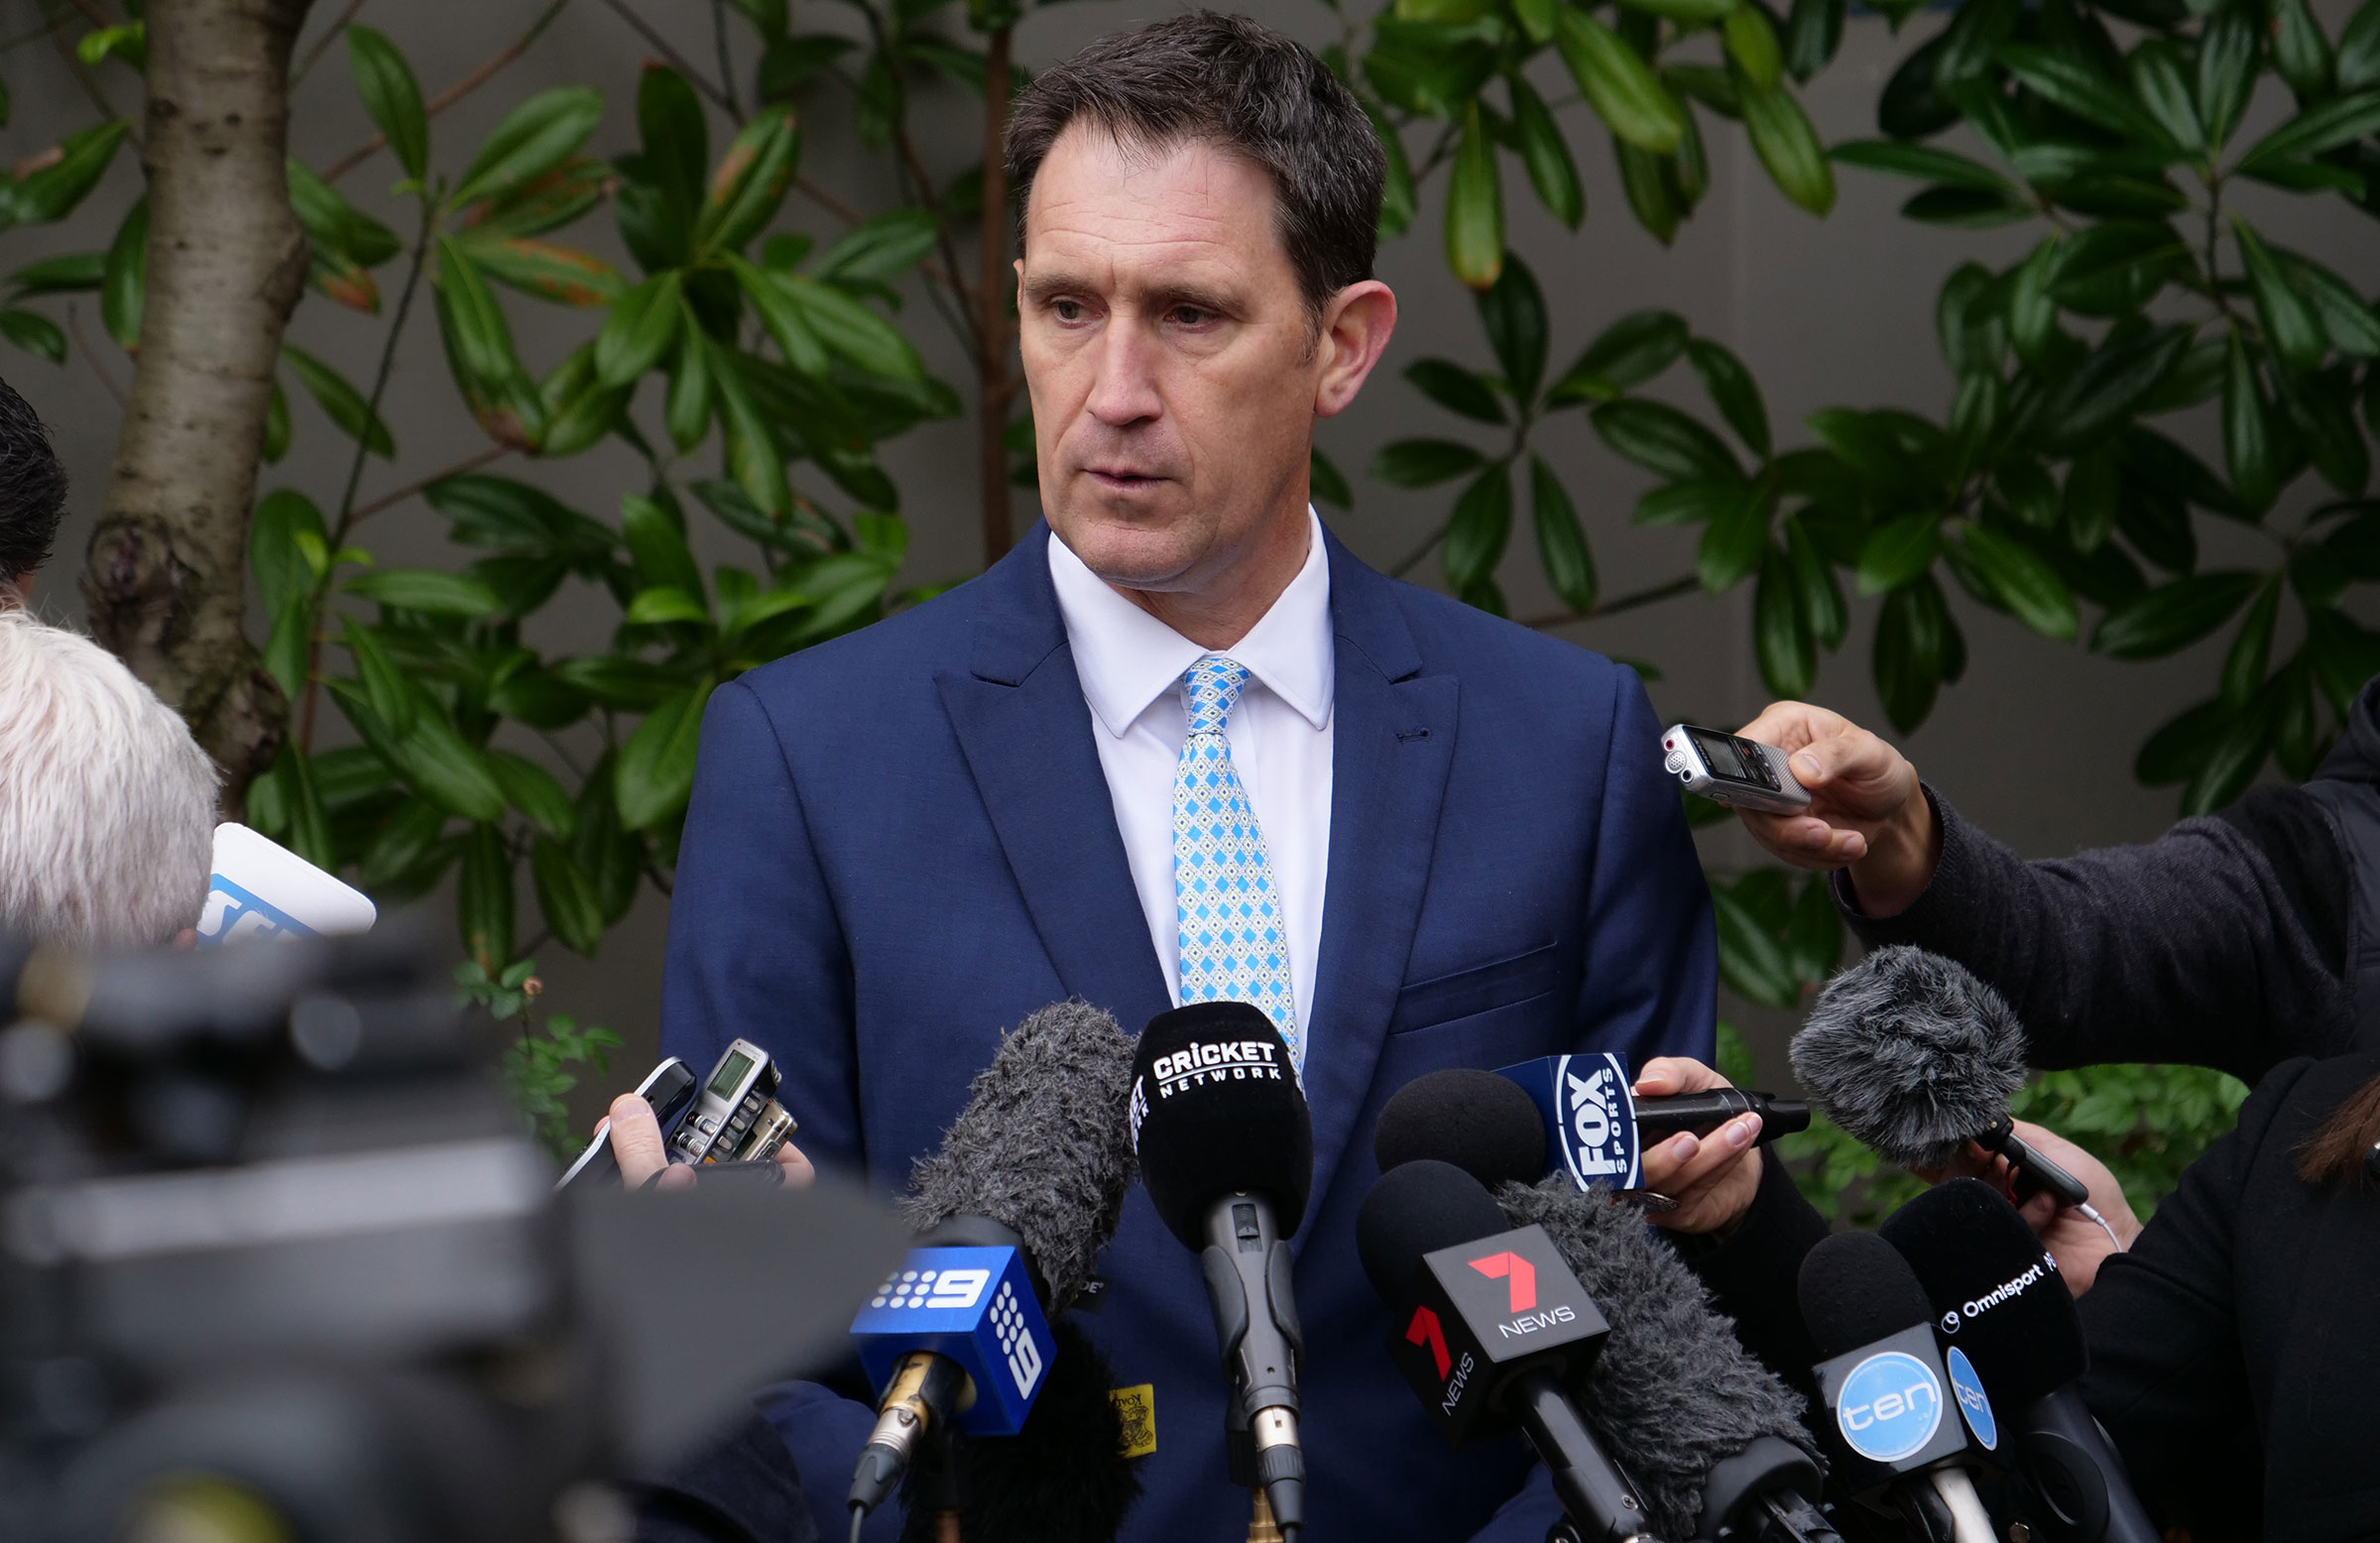 Cricket Australia chief suggests independent arbitration to resolve pay dispute